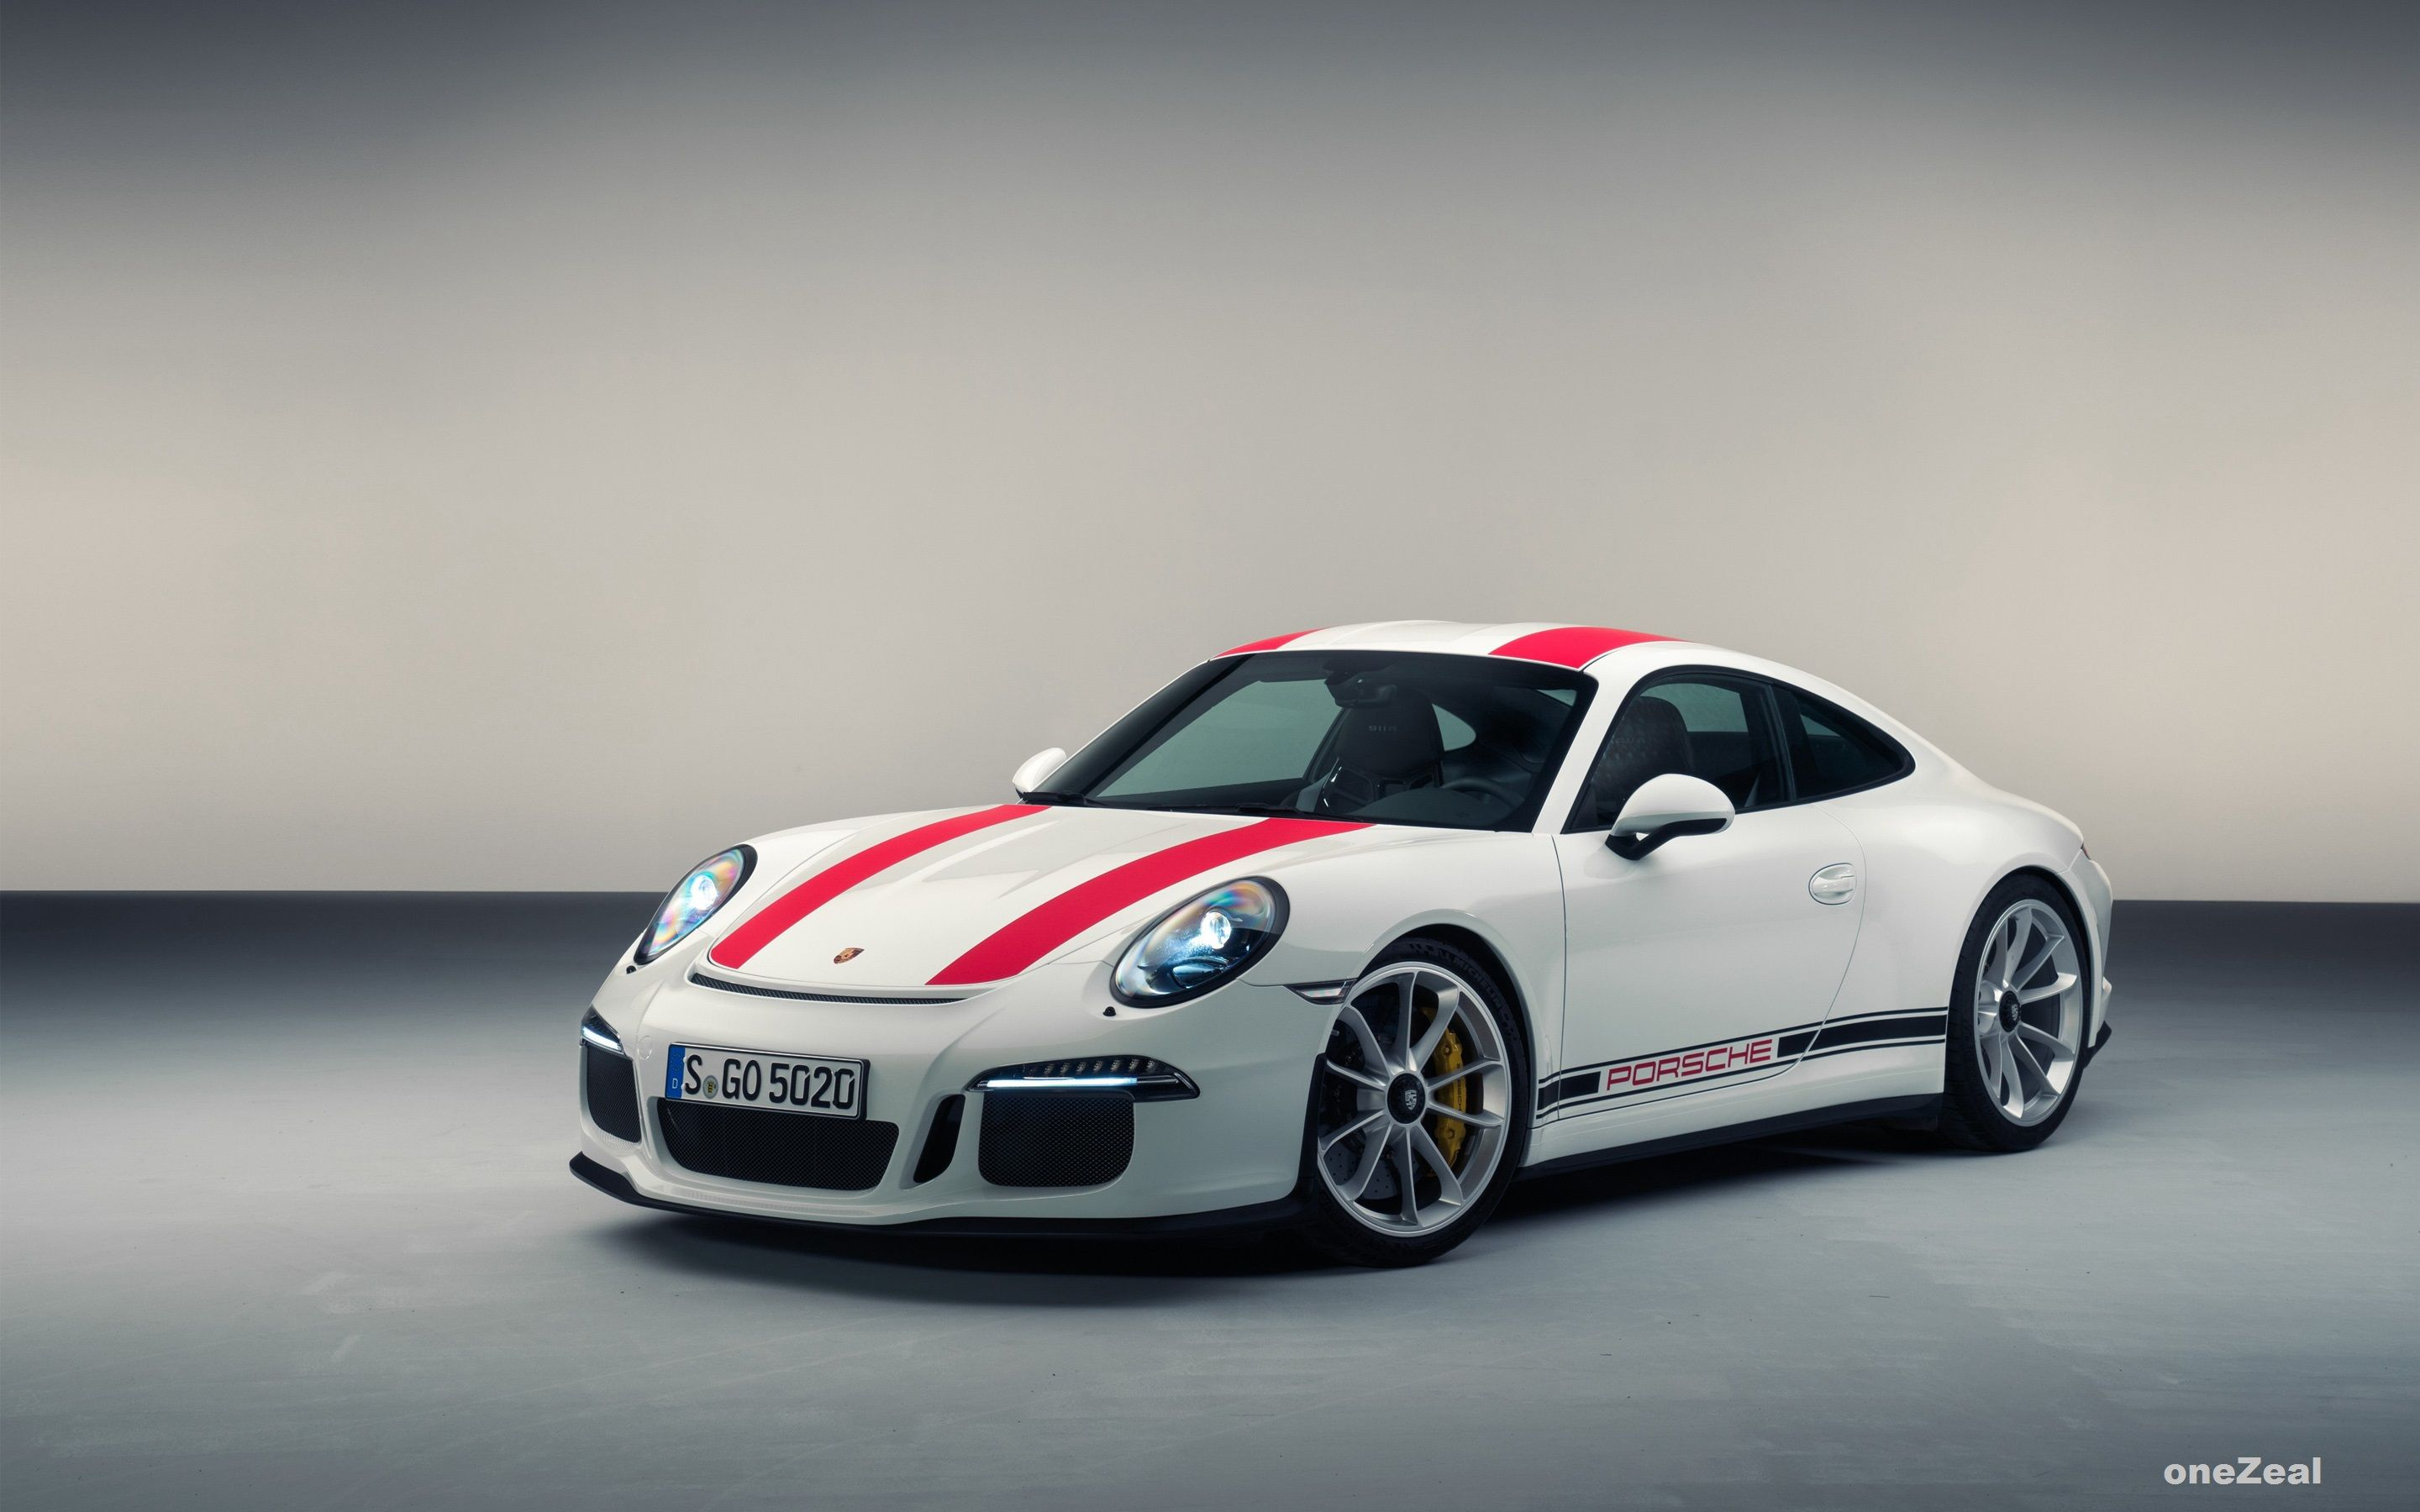 Download hd porsche 911 r 2017 wallpapers for your desktop mobiles tablets in high quality hd